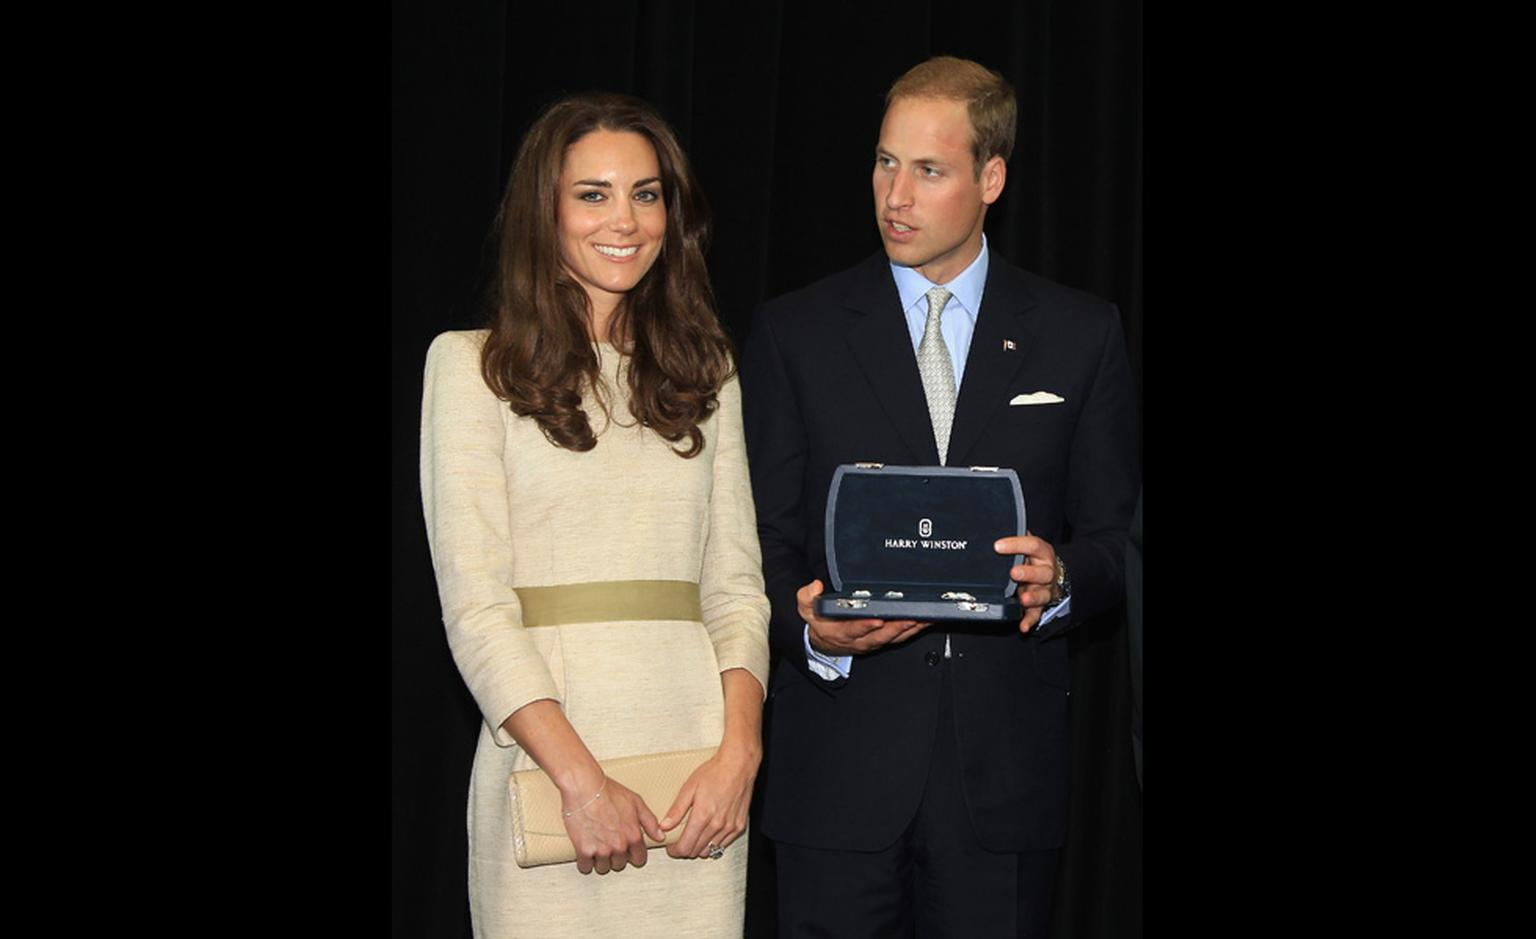 The royal couple with their gift from the Northwest Territories on 5  July 2011 during their state visit to Canada.